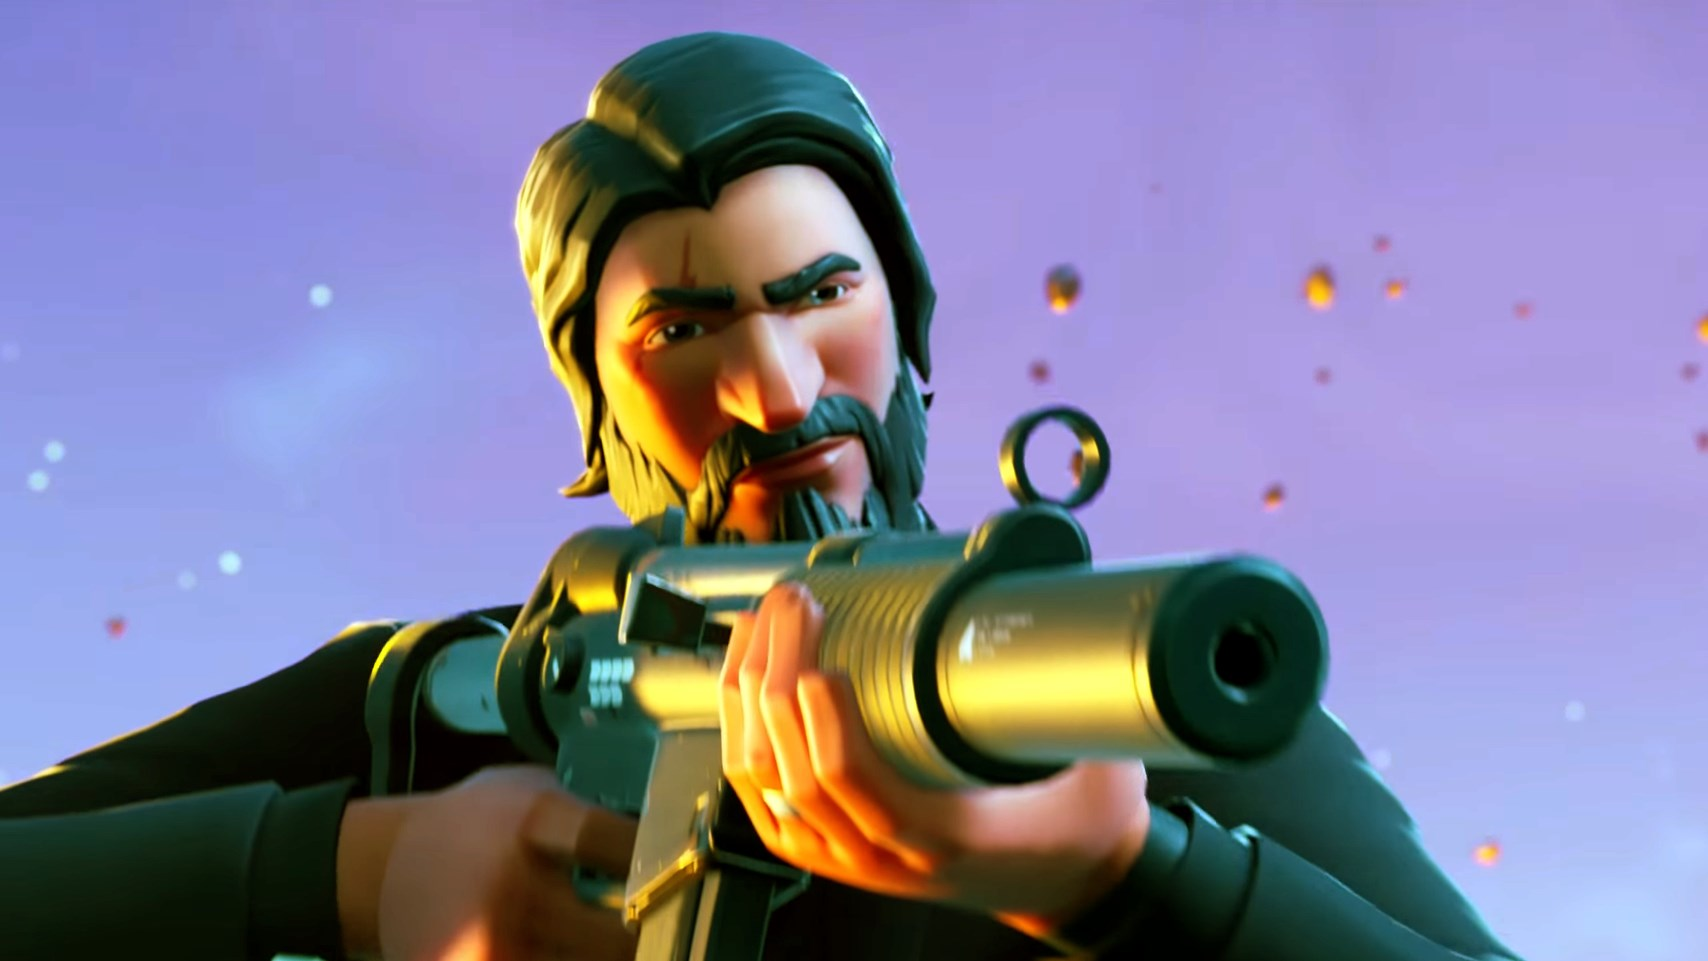 Fortnite Patch Notes v9.01 Breakdown - Play as John Wick in New LTM!